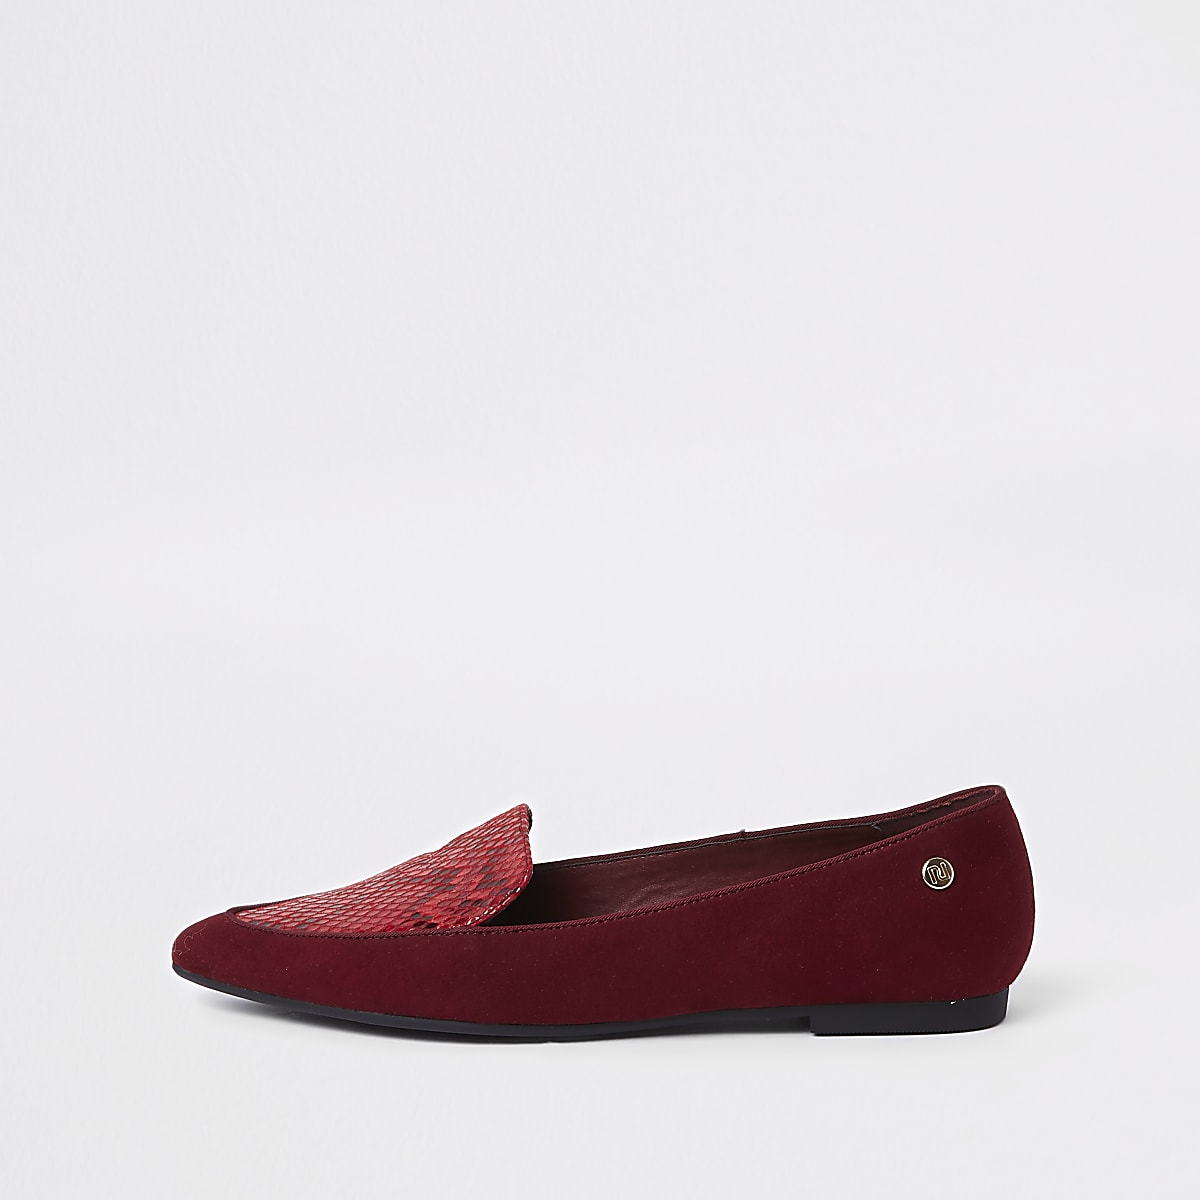 Croc Red Toe Shoes Pointed Flat lFJTKc1